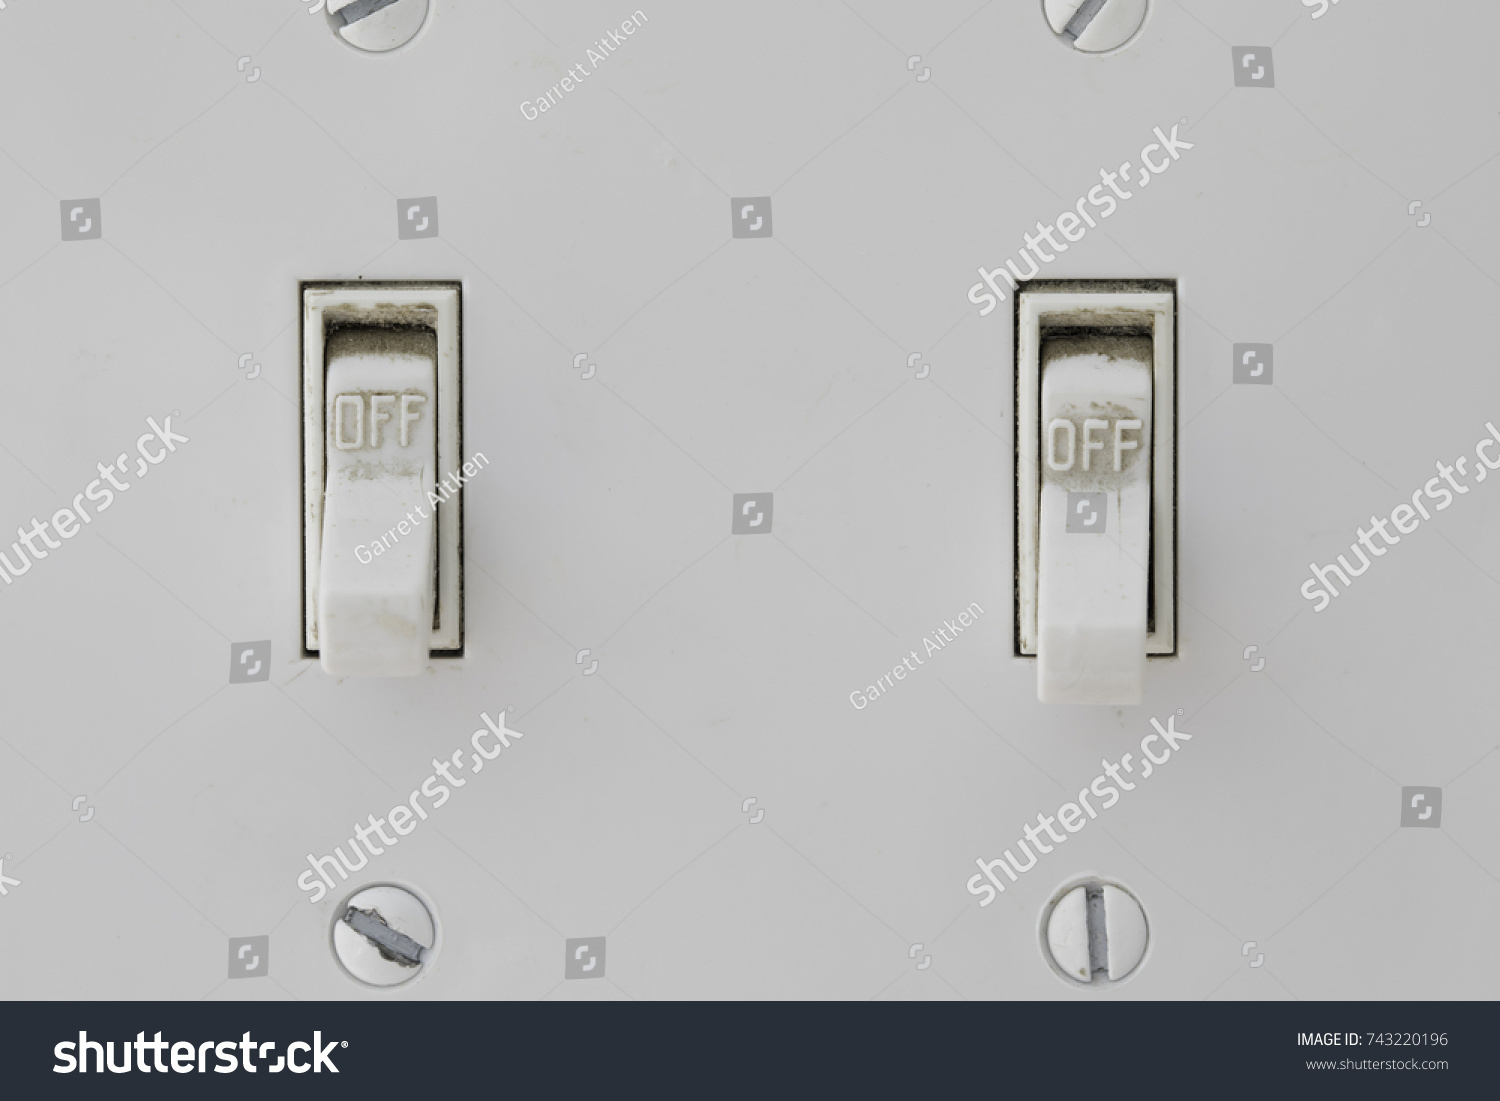 Two Light Switches Both Shown Off Stock Photo (Edit Now)- Shutterstock